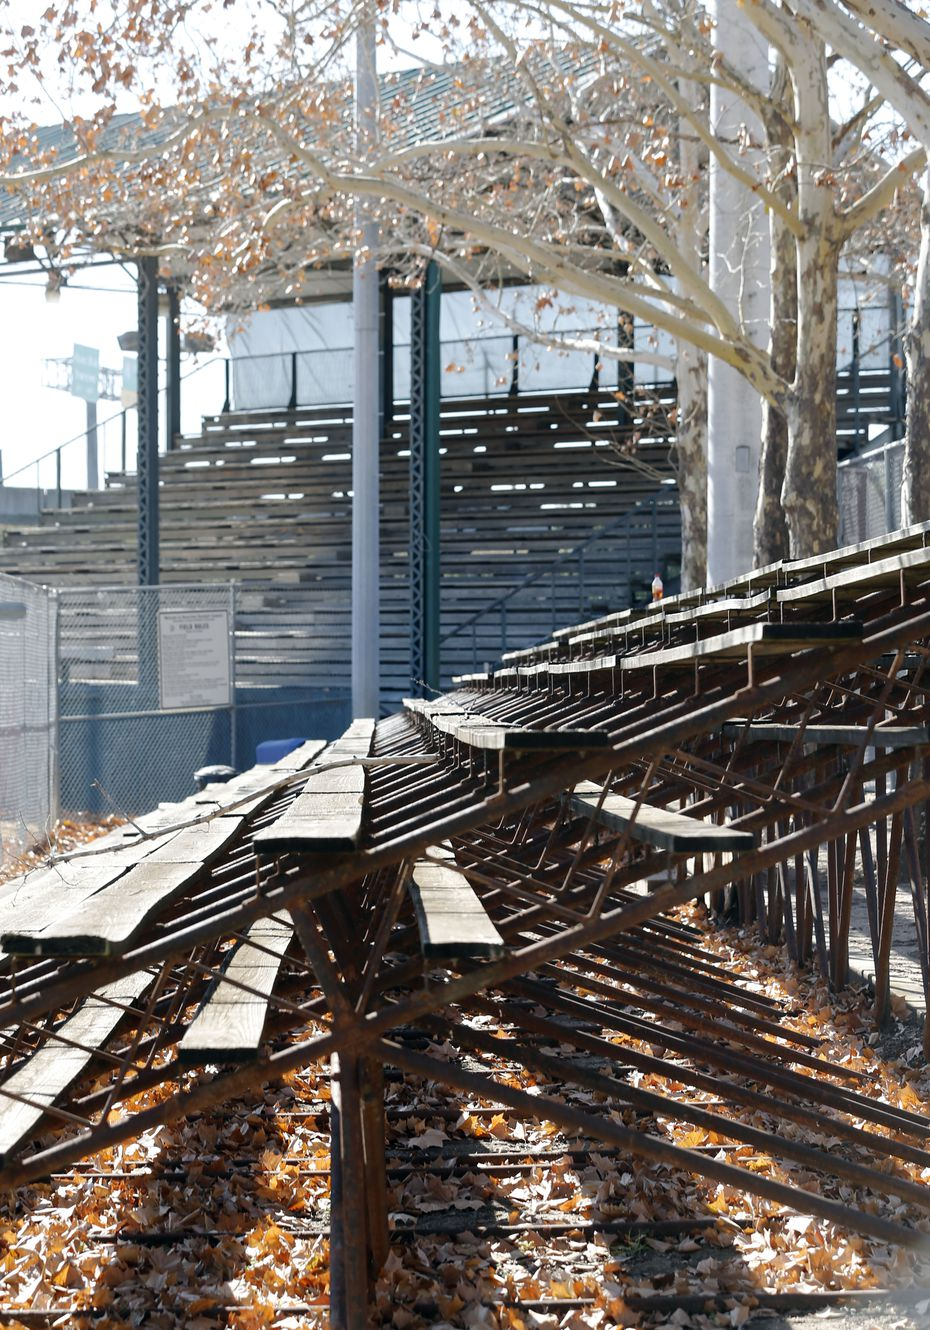 Reverchon Park's baseball field has been allowed to slowly deteriorate in recent decades and among the most visible decay are its rotting bleachers.